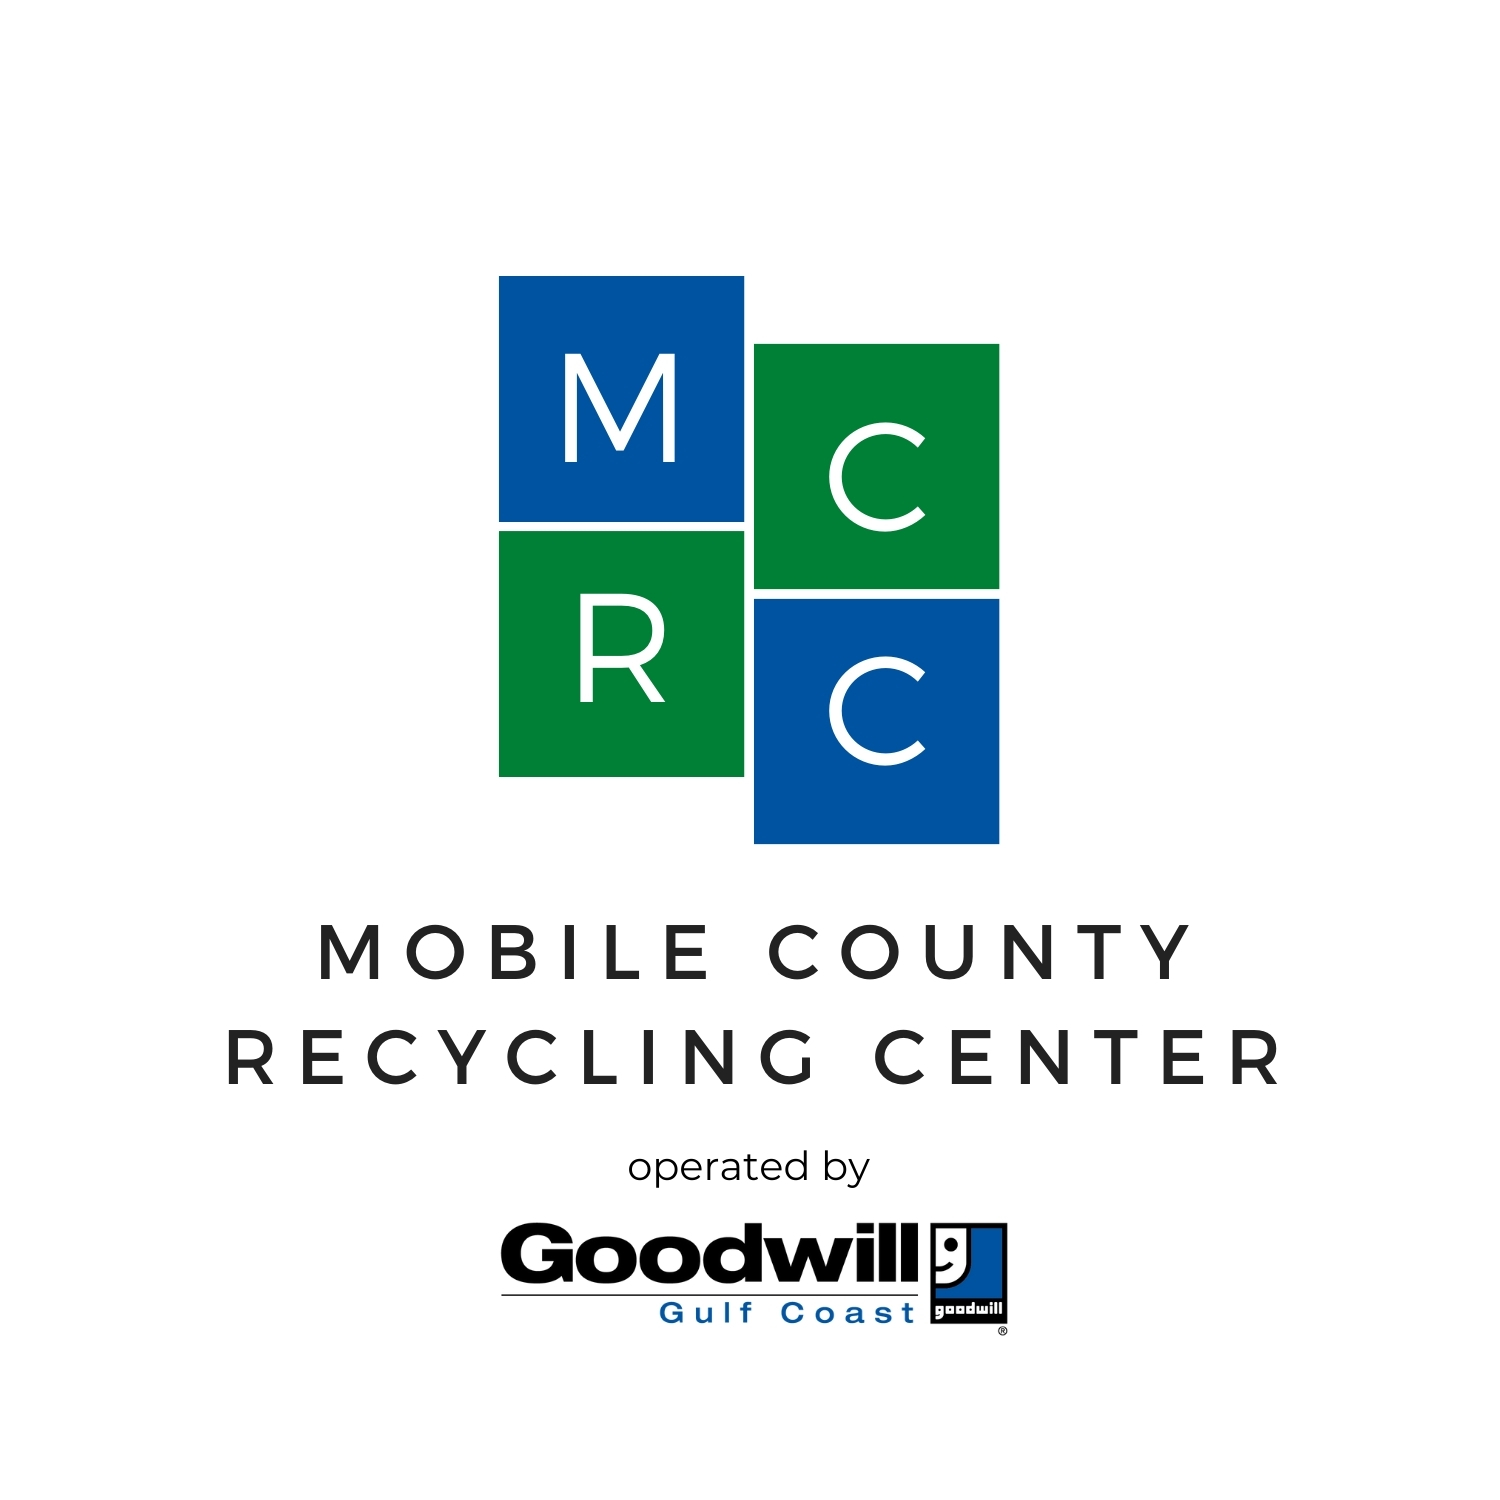 Mobile County Recycling Center